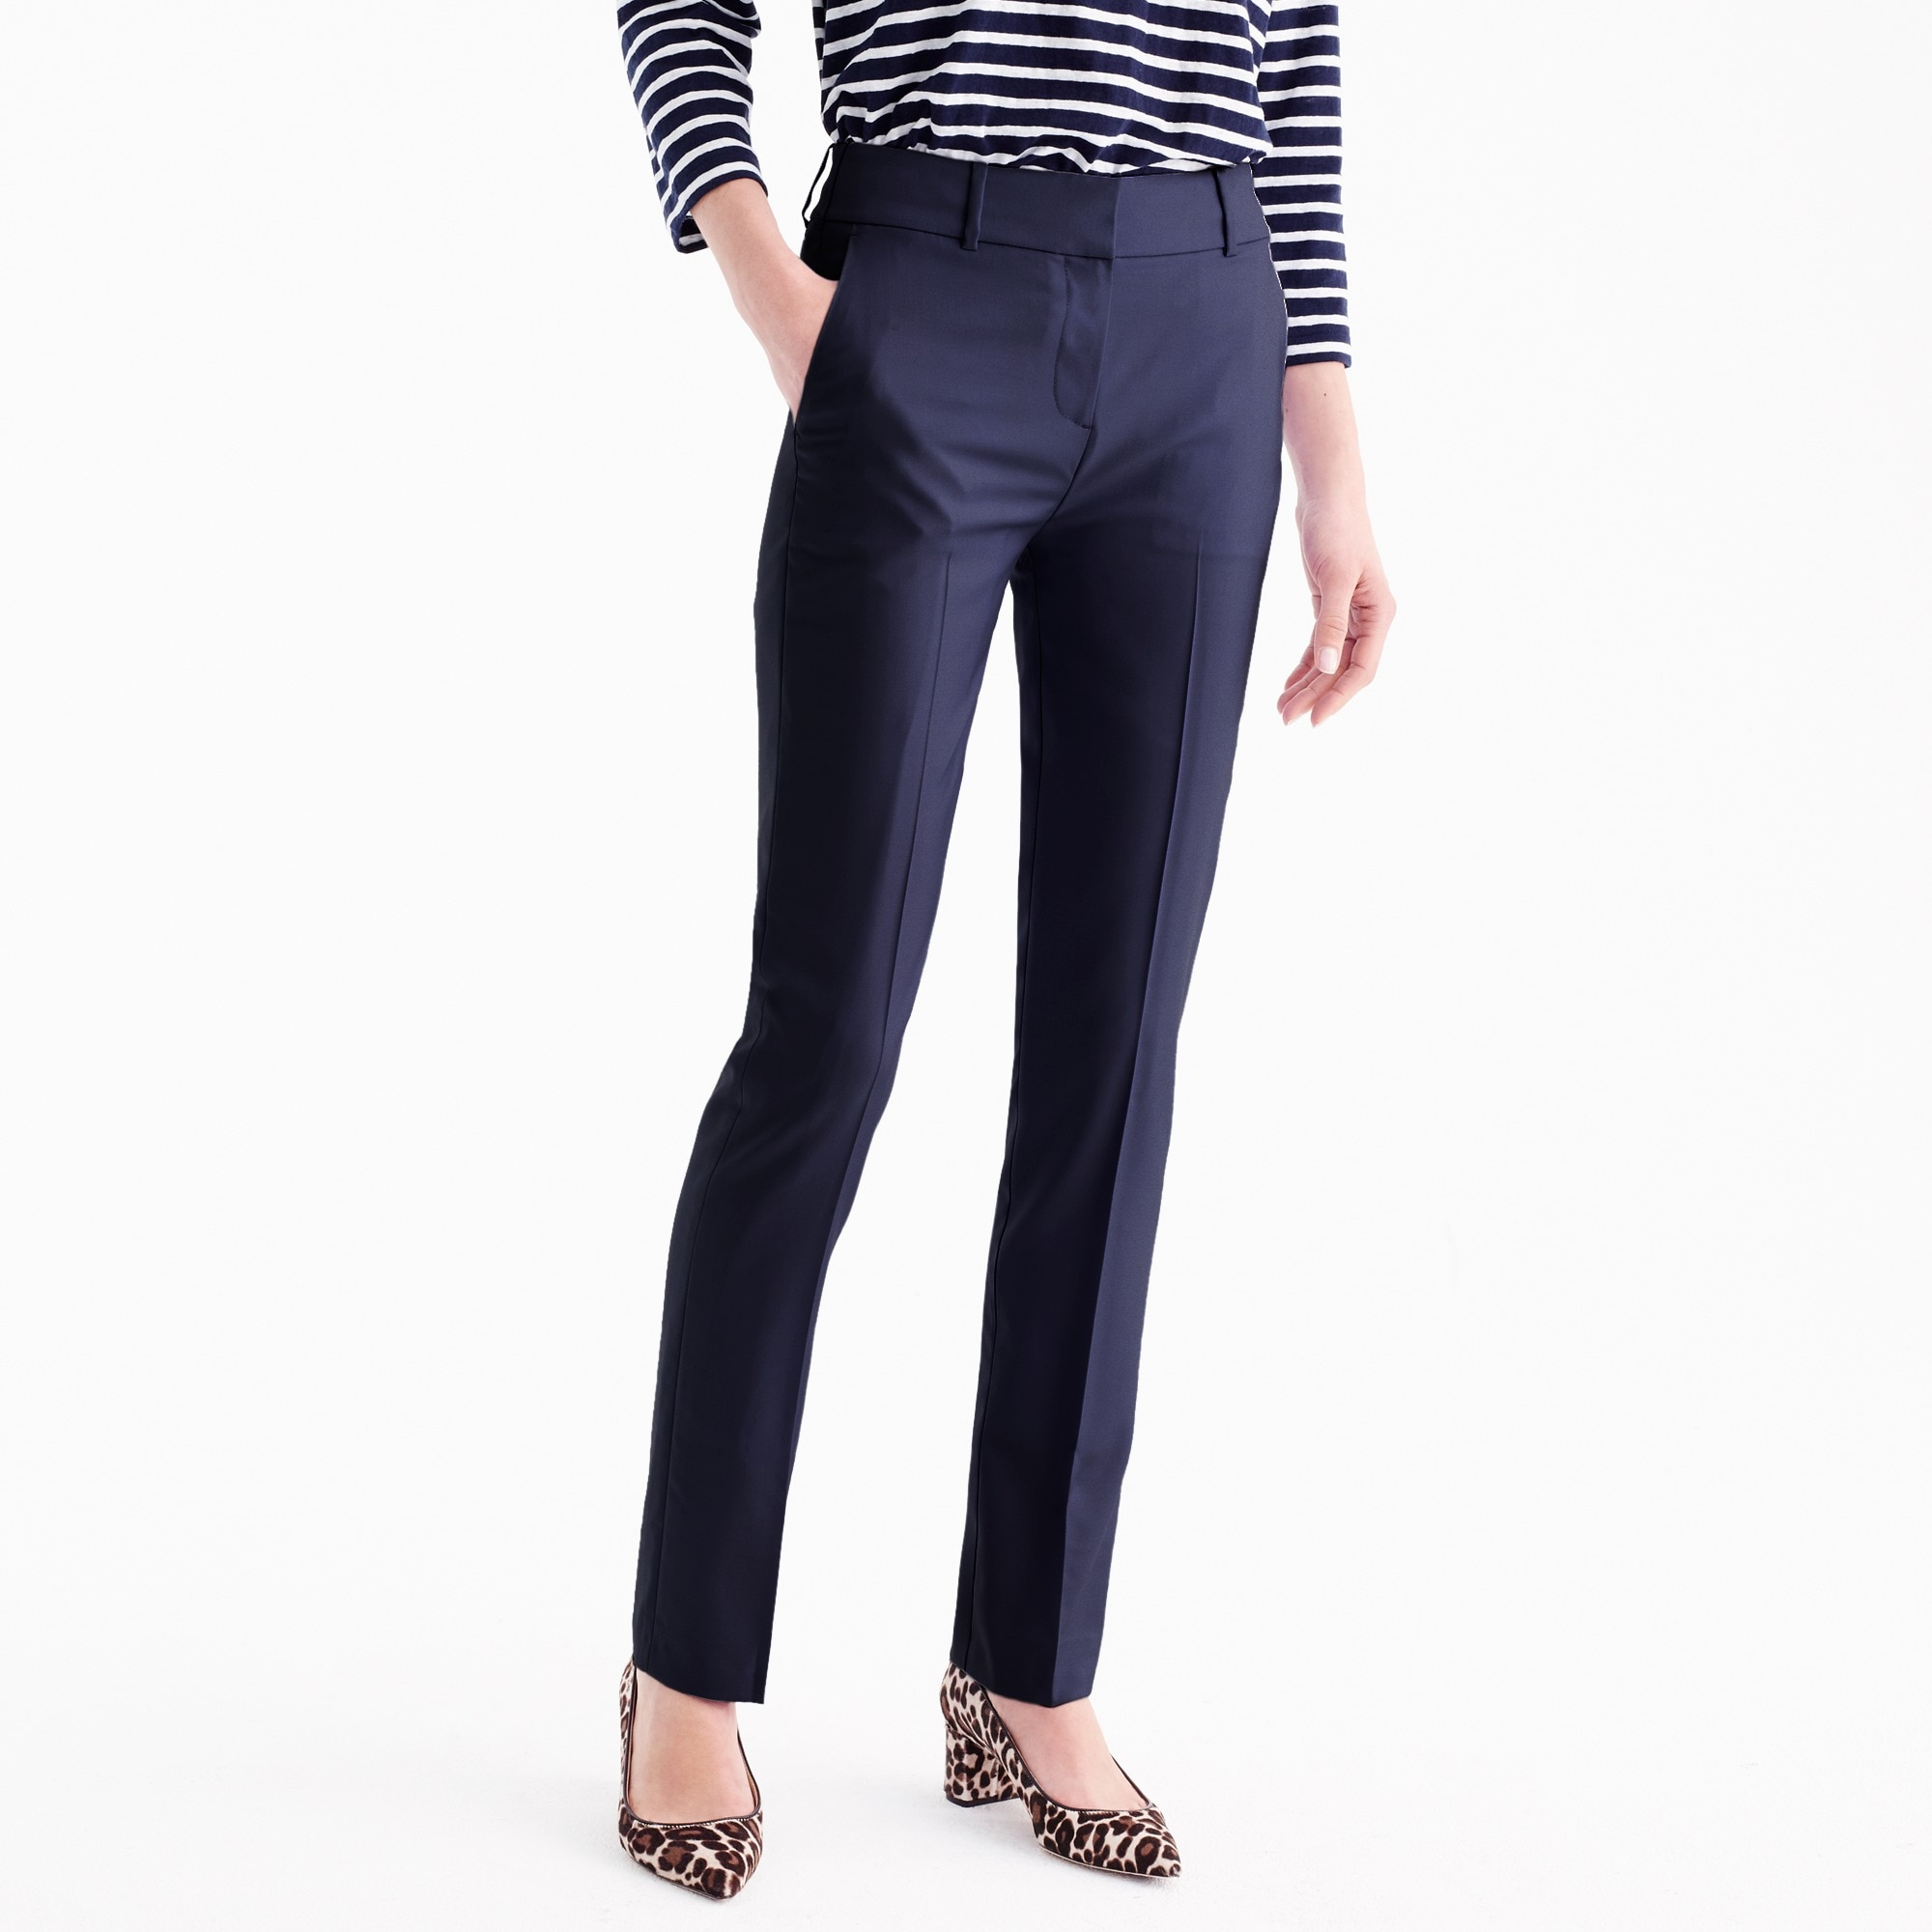 Image 1 for Tall tailored trouser in Italian Super 120s wool